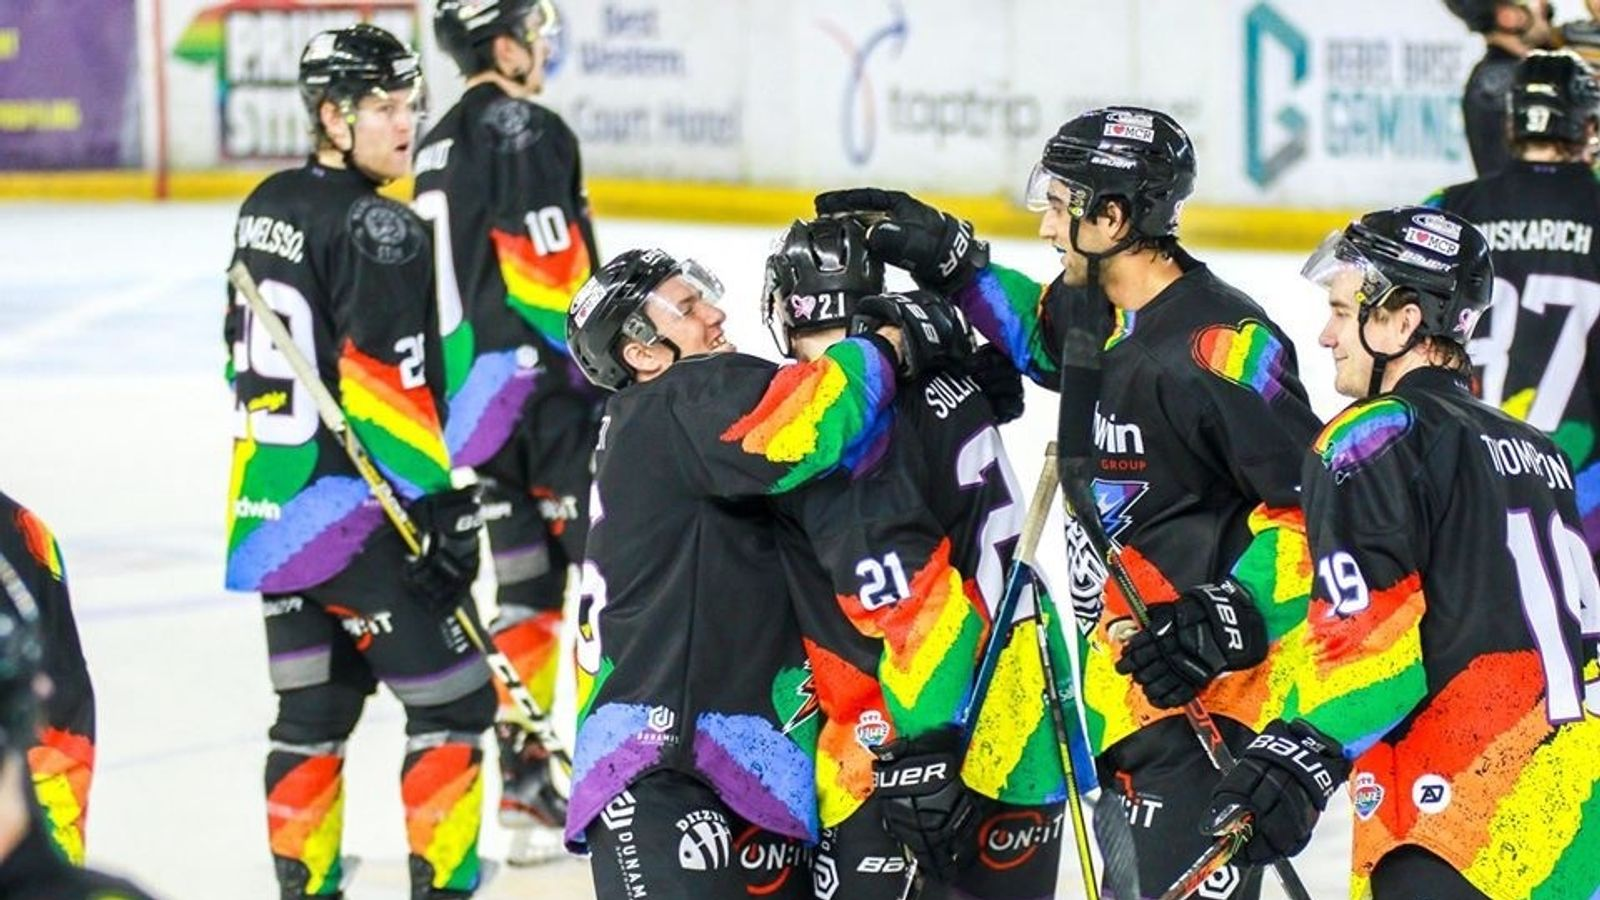 Zach Sullivan on coming out in ice hockey and his Manchester Storm team-mates' support